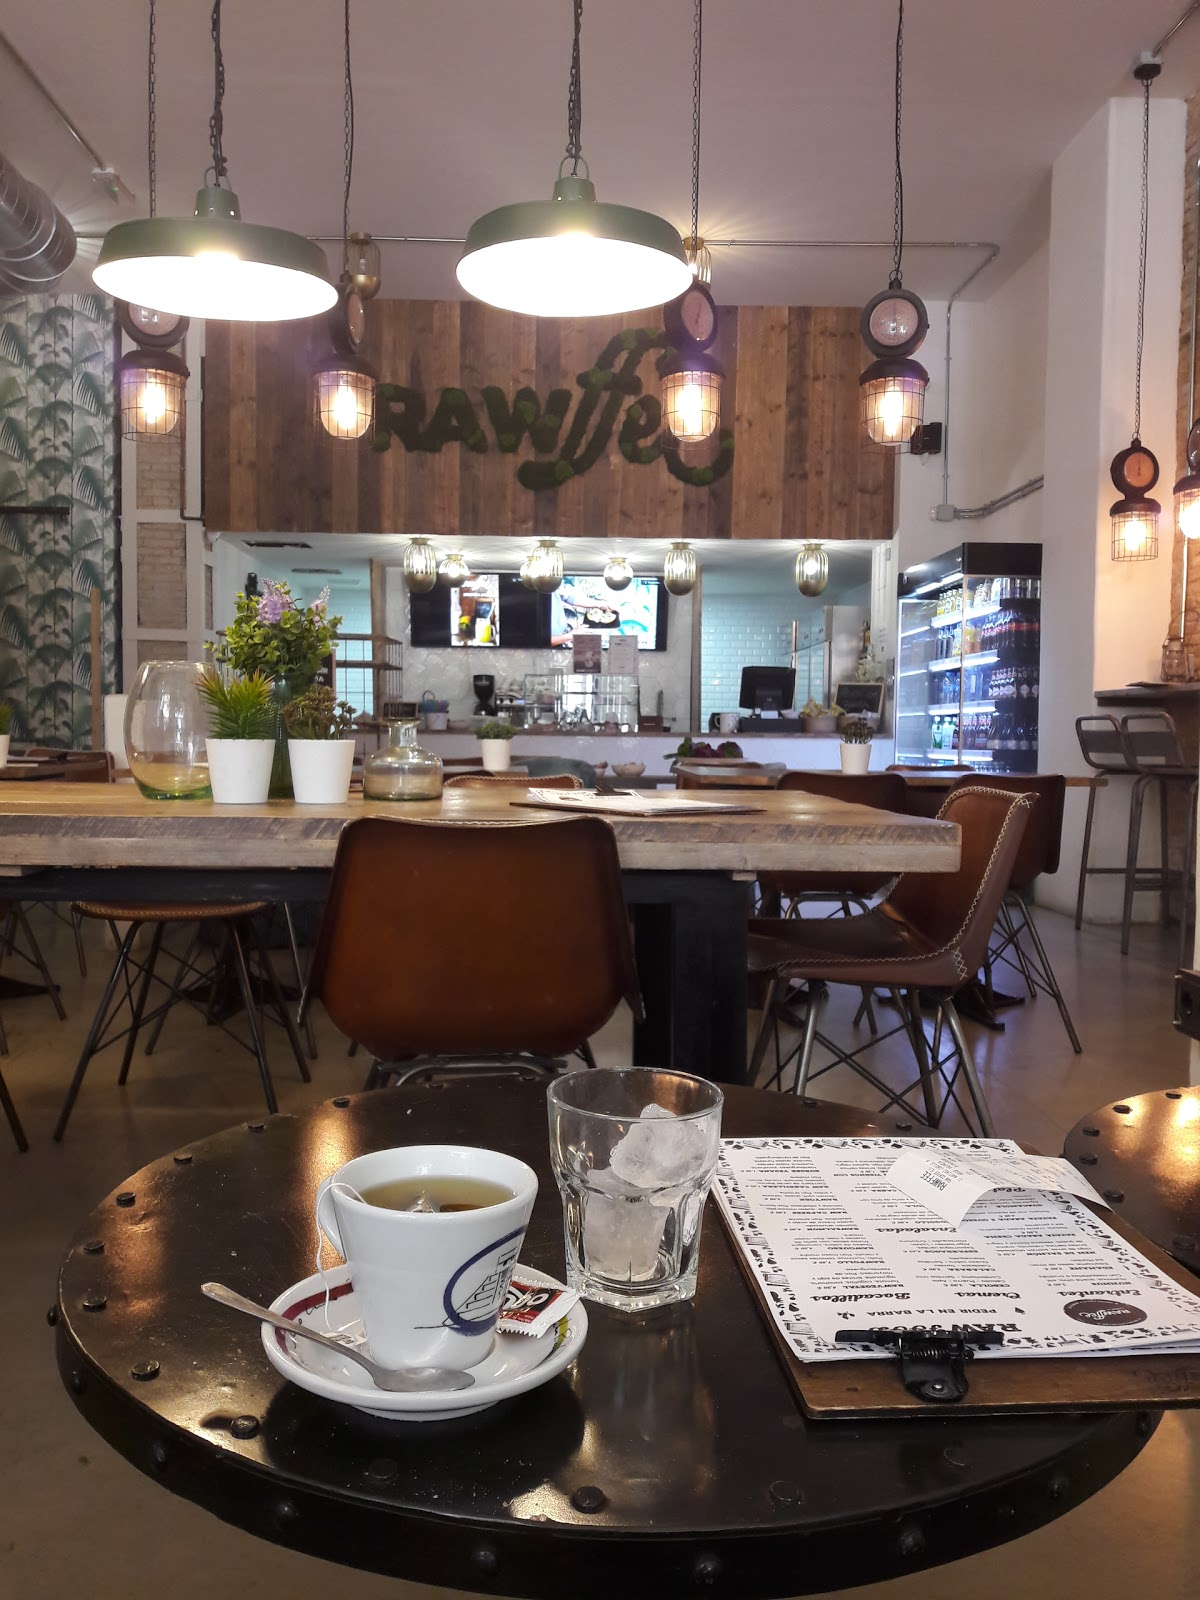 RAWffee: A Work-Friendly Place in Valencia